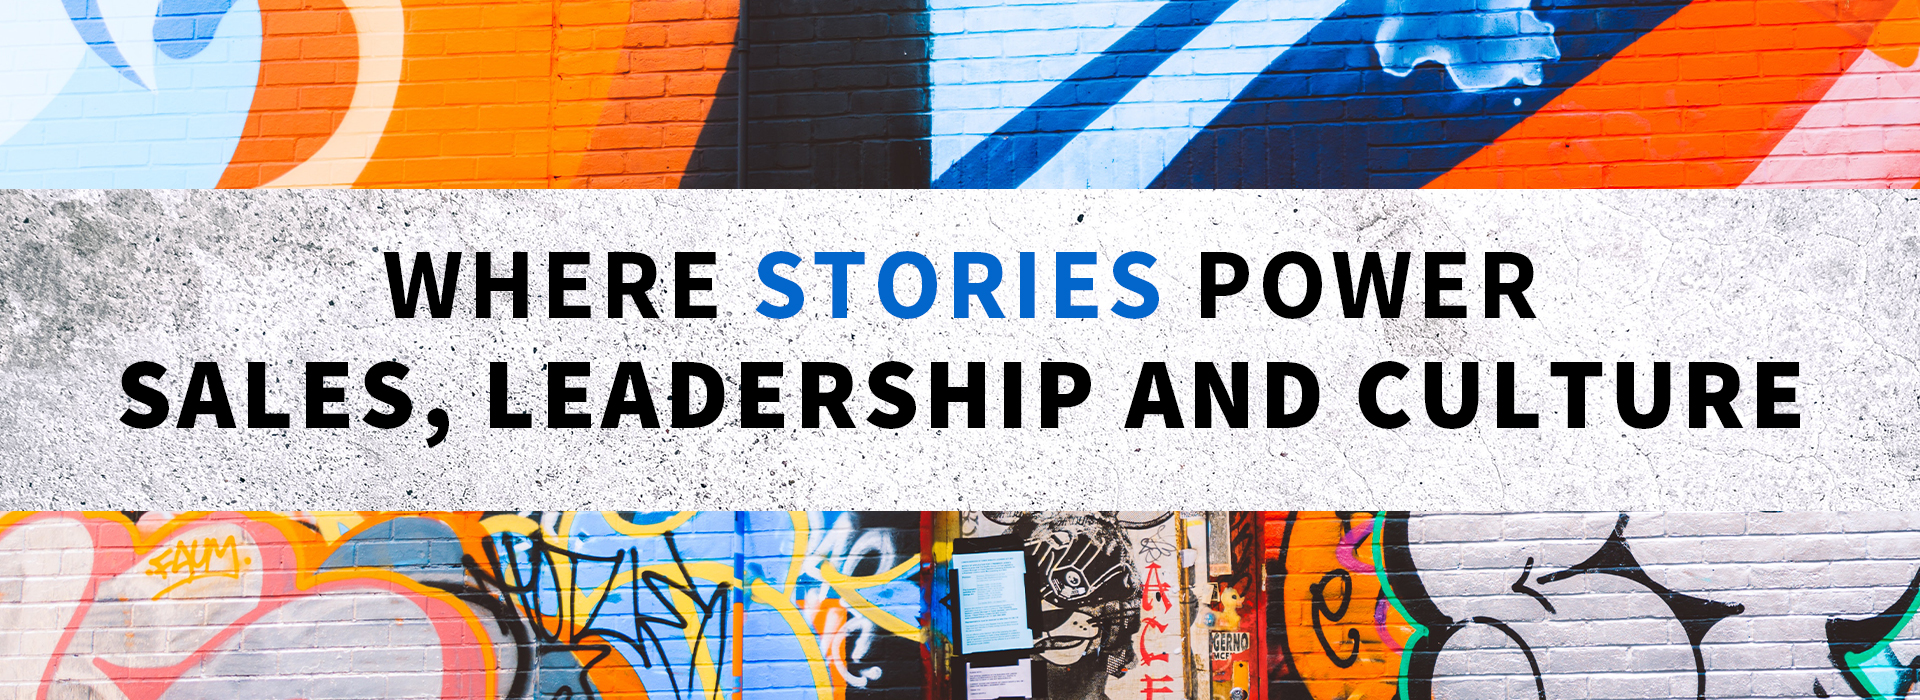 Stories Rule where stories power sales, leadership and culture